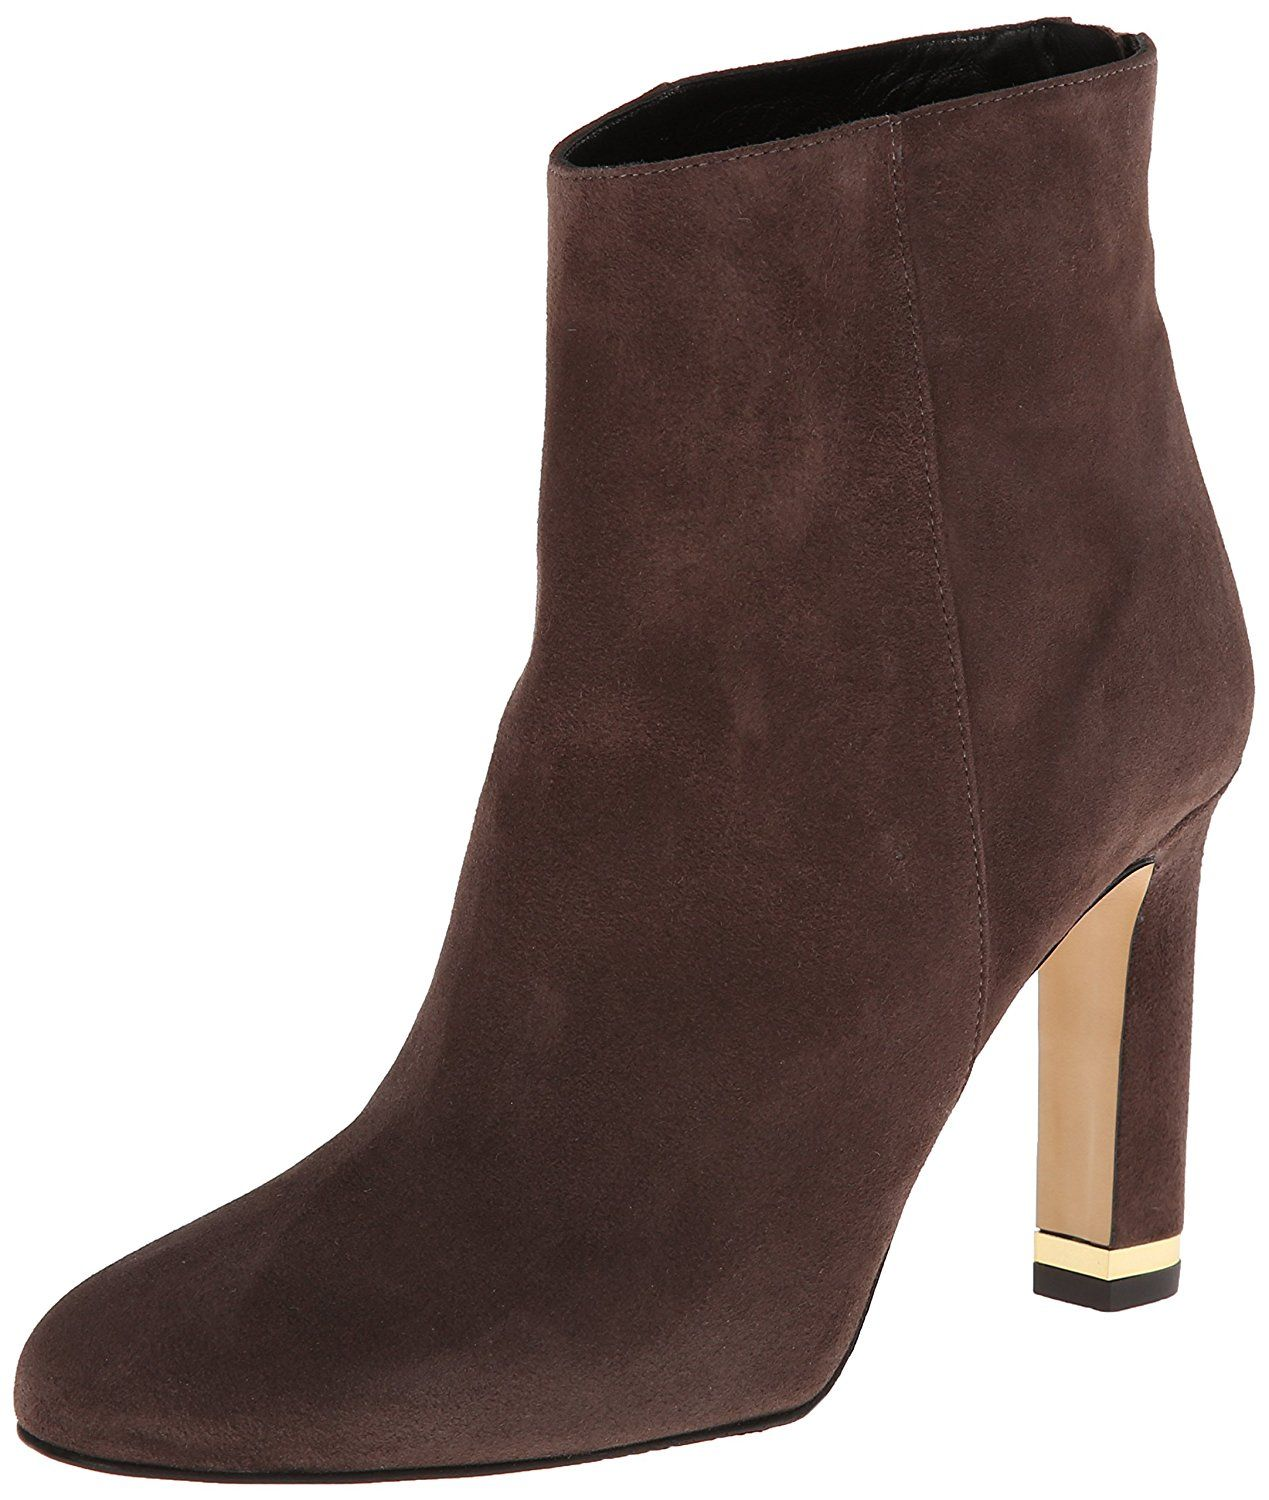 Kate Spade New York Womens Akanel Dark Taupe Suede - Boots